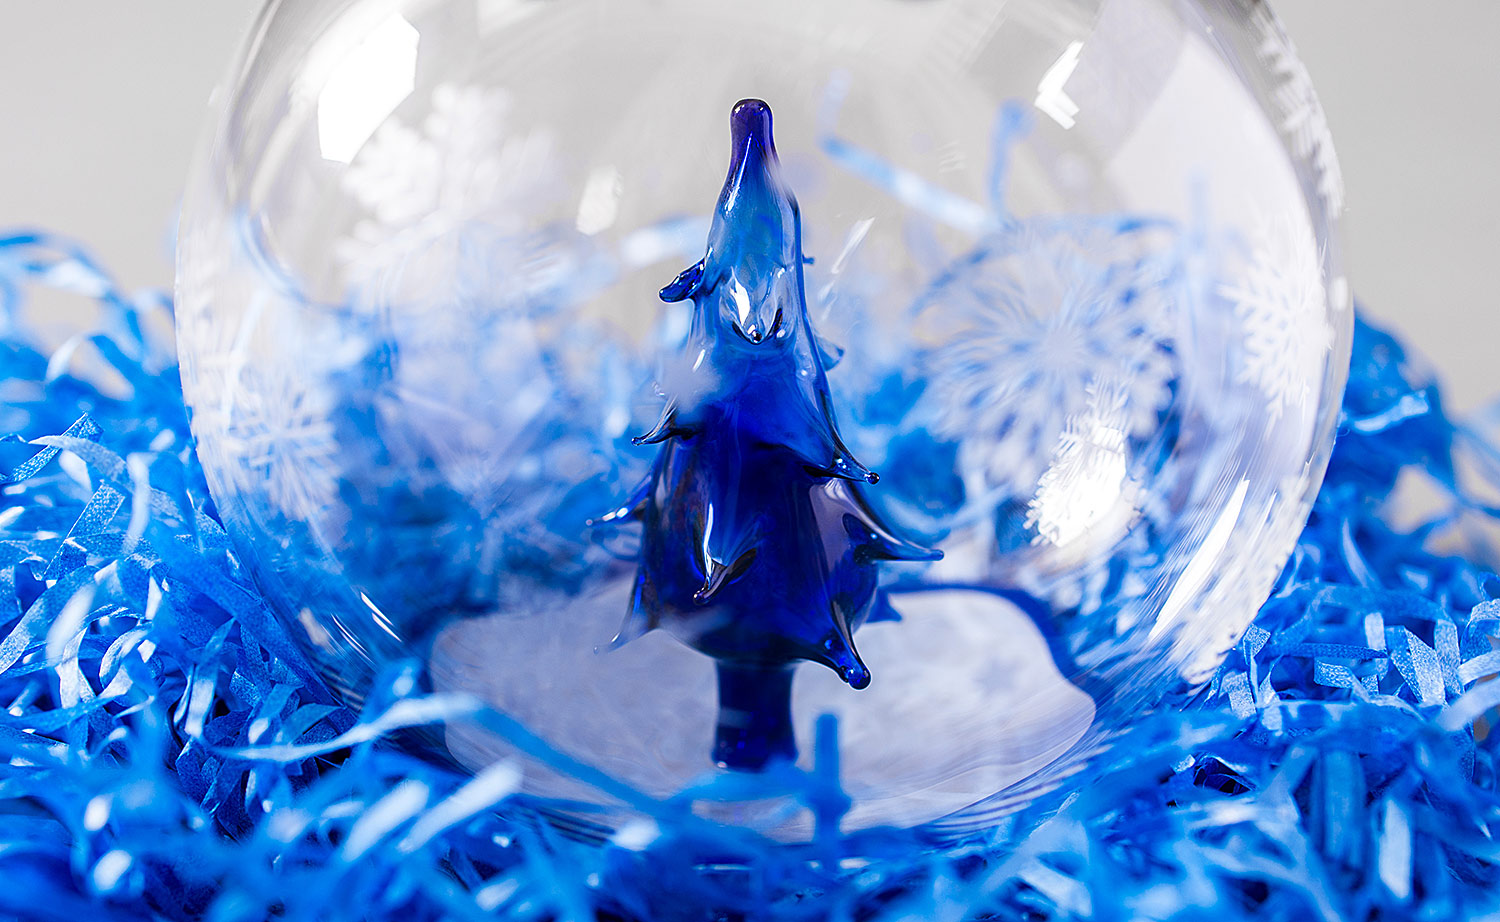 Blue glass Christmas tree inside a transparent glass ball. The magic craft of glassblower.